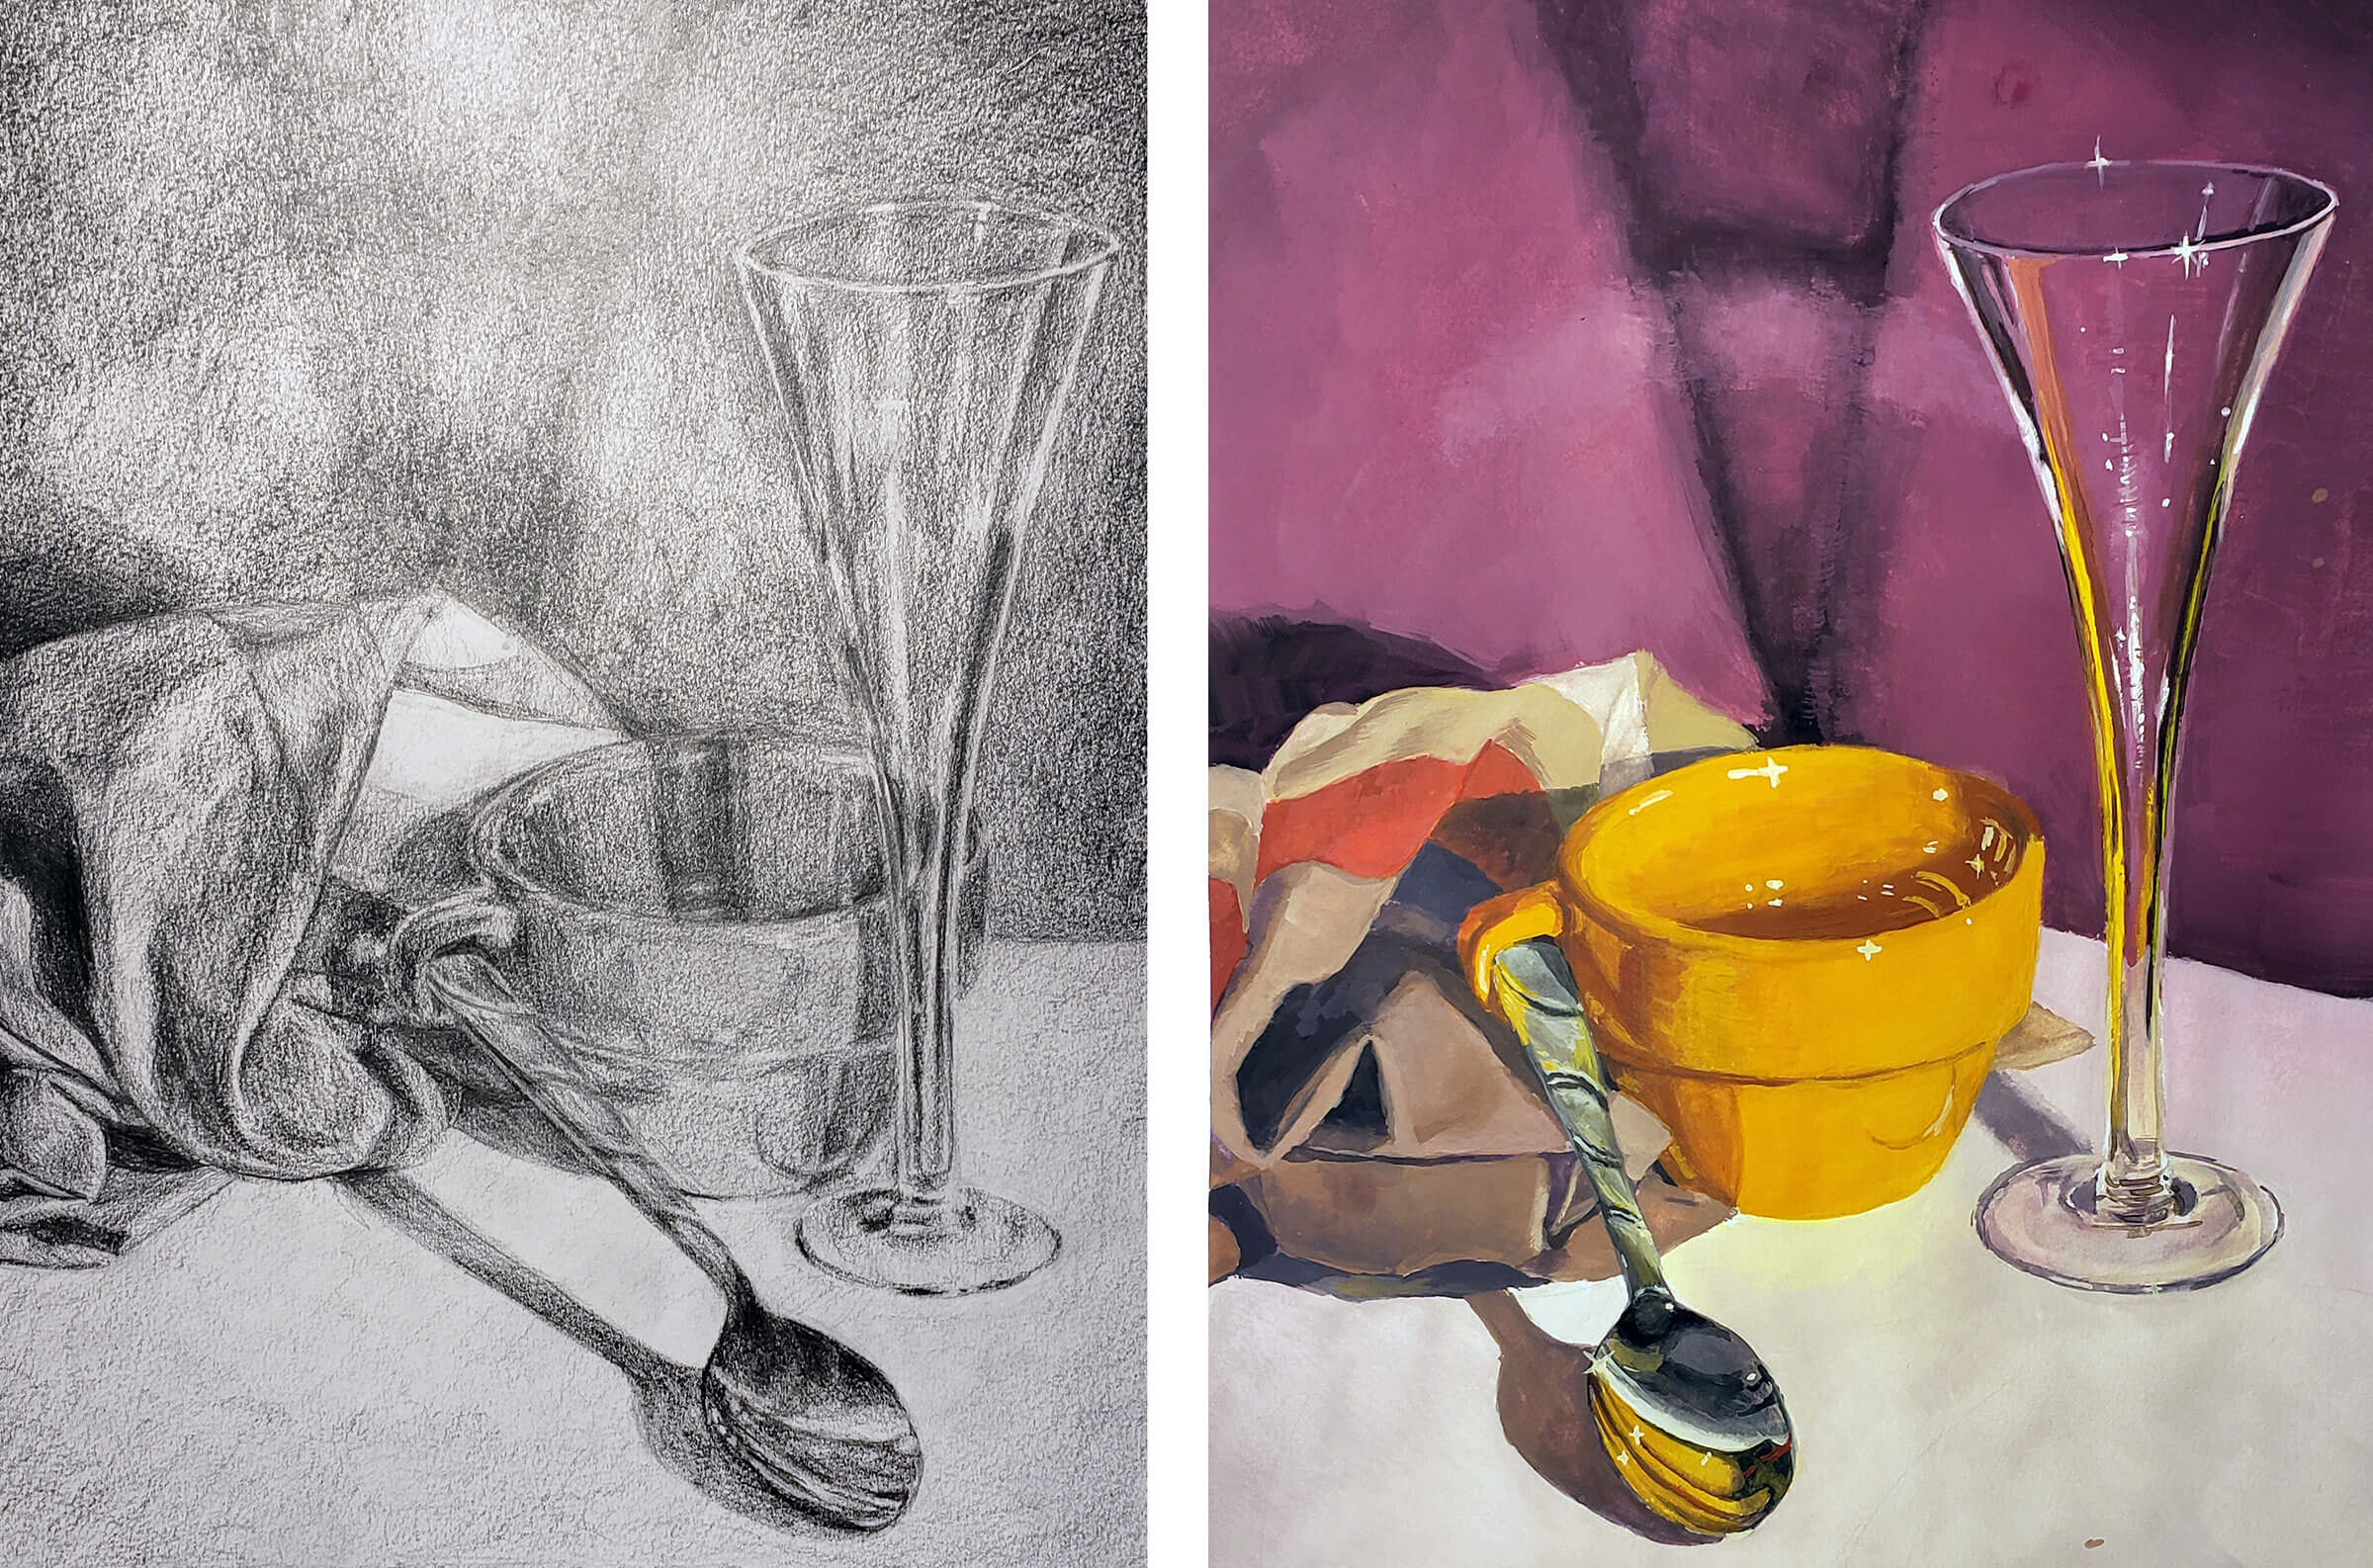 Still-life with mug, spoon, and glass, in black and white and color